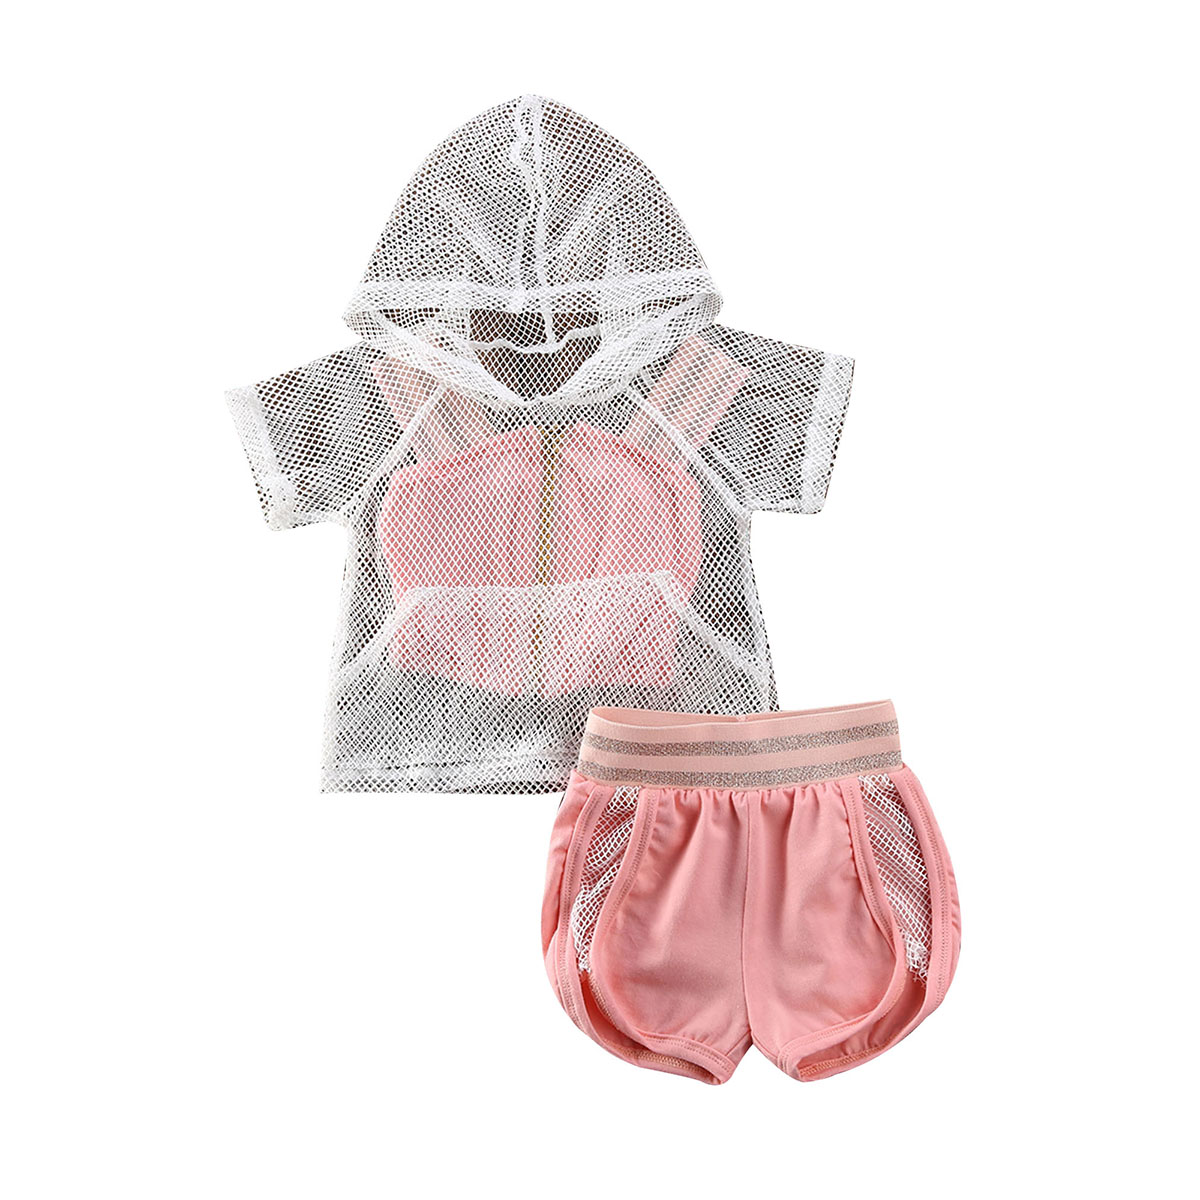 Toddler Baby Girls Strap Camis Fishnet Mesh Hoodies + Shorts Loose Pleated Elastic Band Pants Summer Outfits Clothes Tracksuit